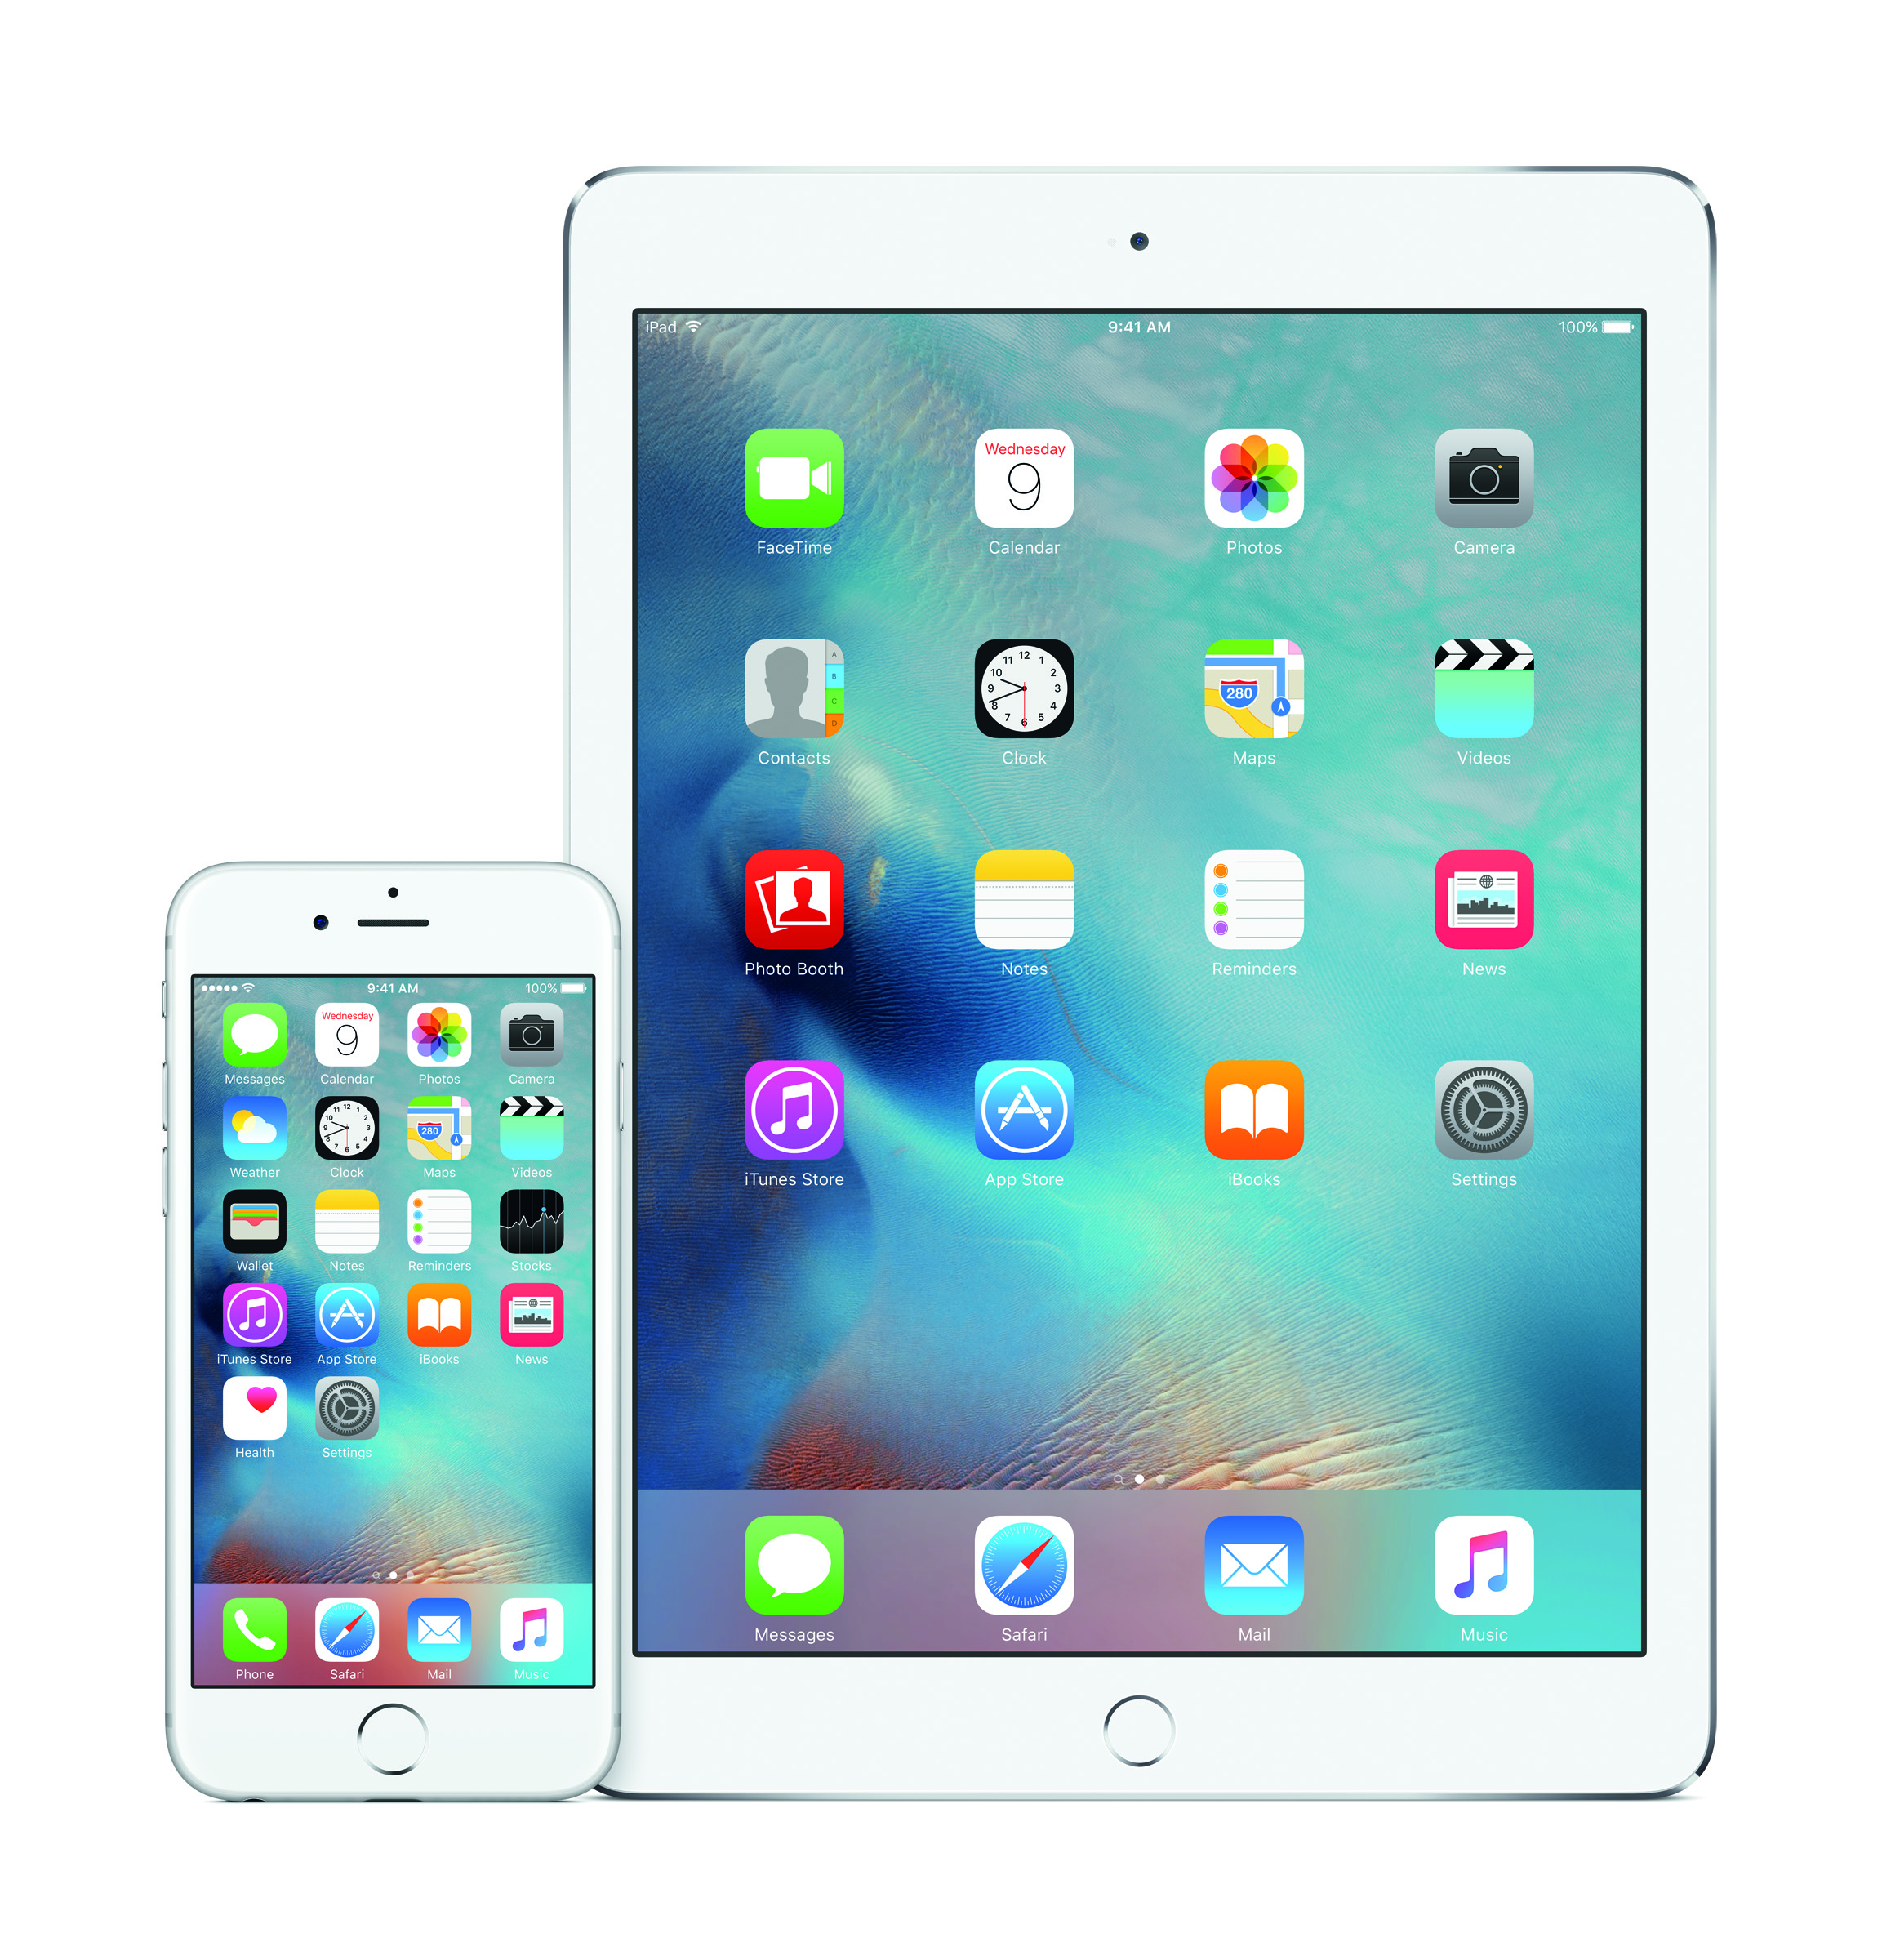 iOS 9, available as a free update for iPhone, iPad and iPod touch